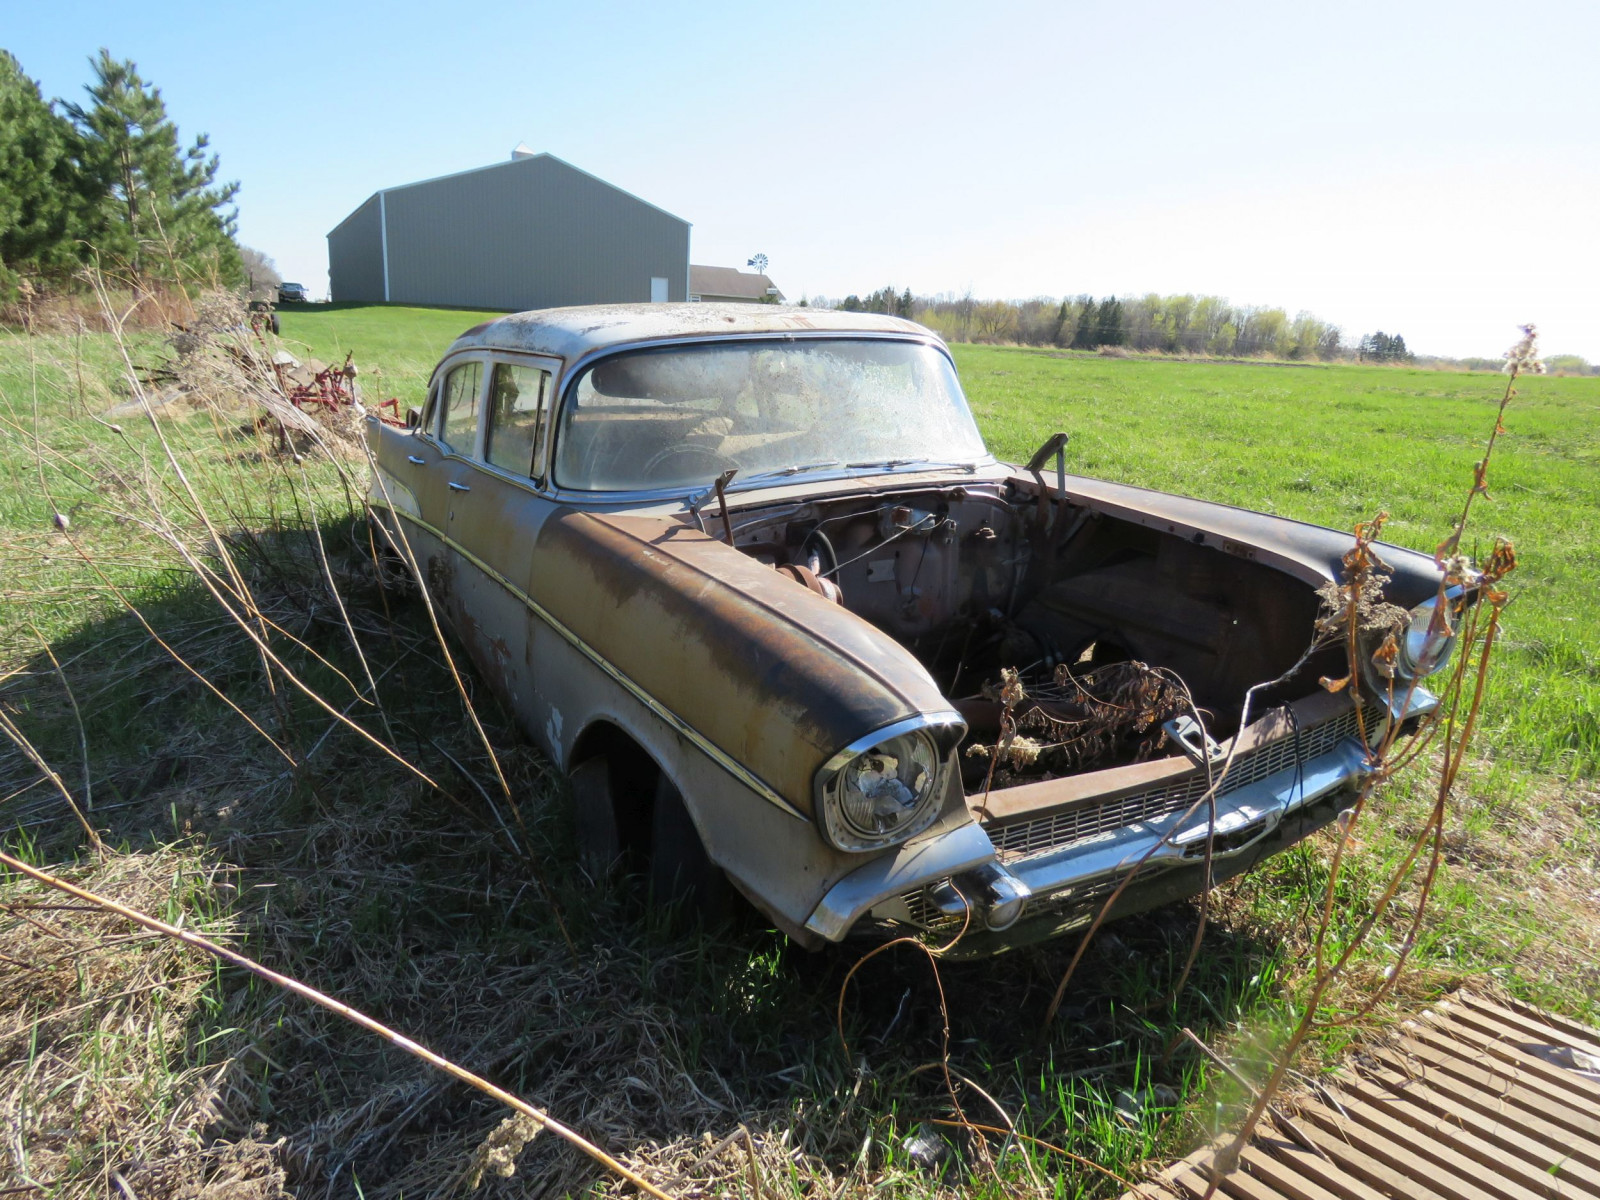 1957 Chevrolet 4dr Sedan parts only - Image 3